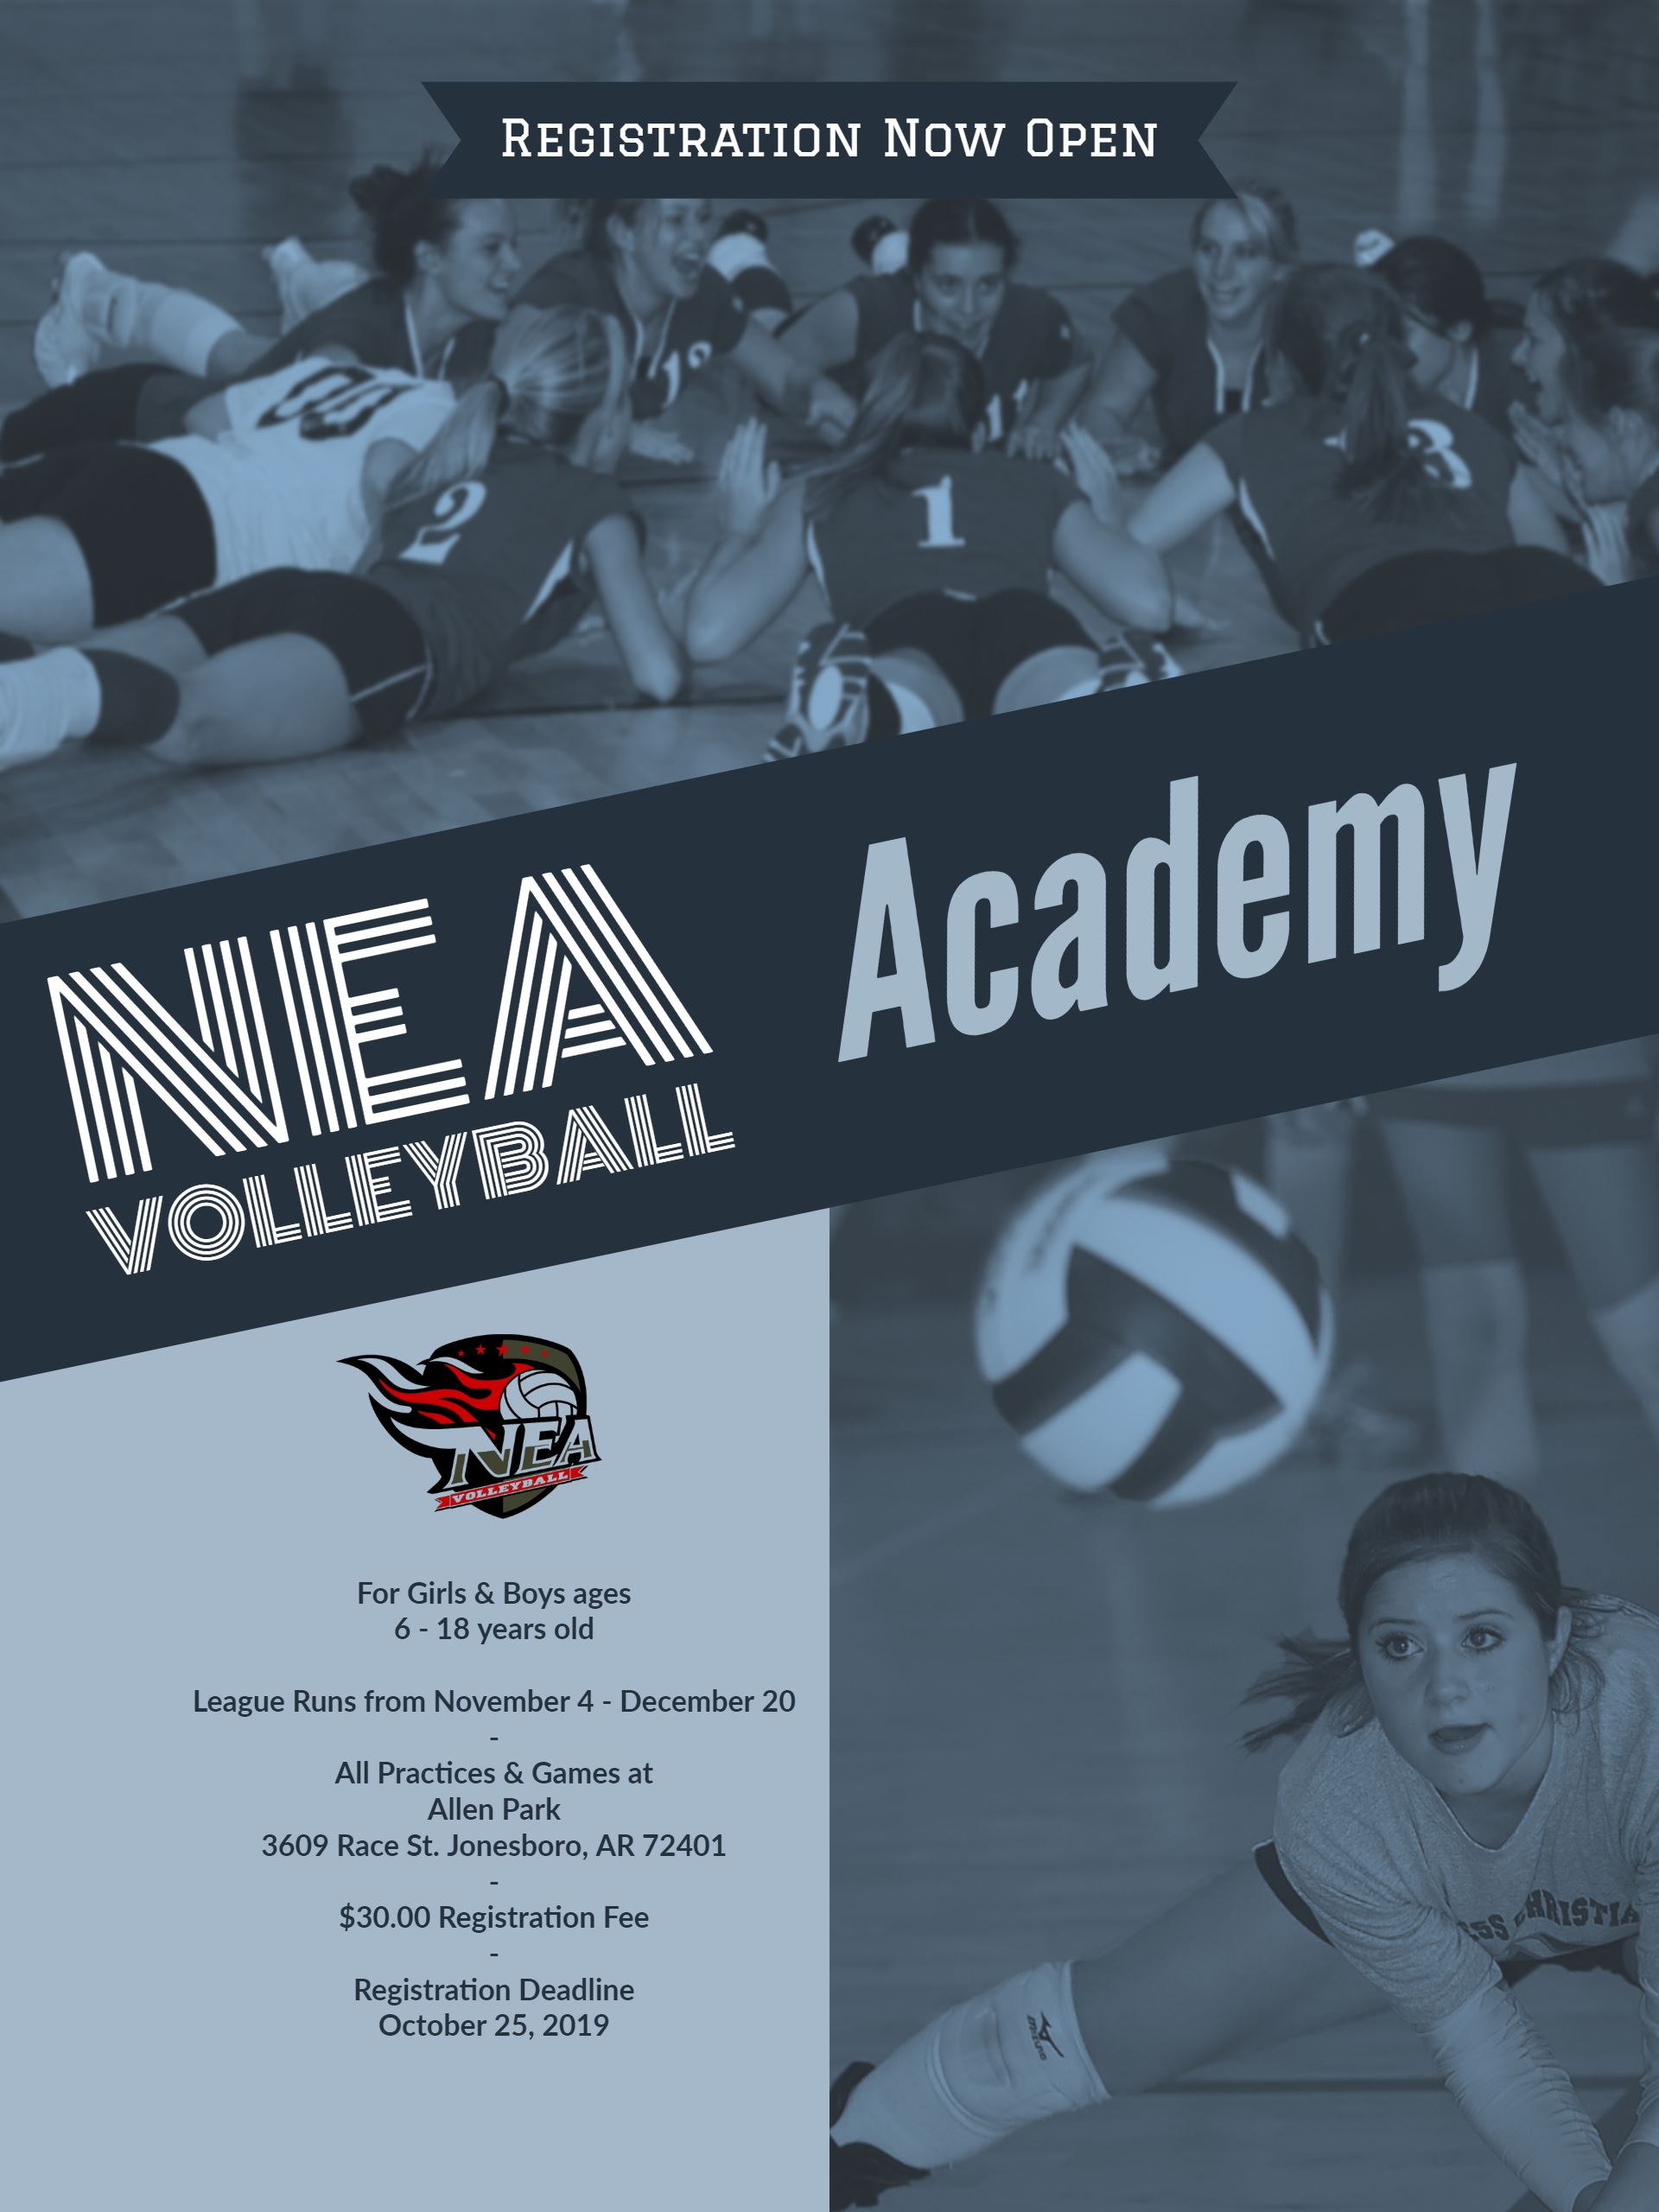 NEA Volleyball Academy registration is $30 and registration deadline is October 25, 2019. For girls